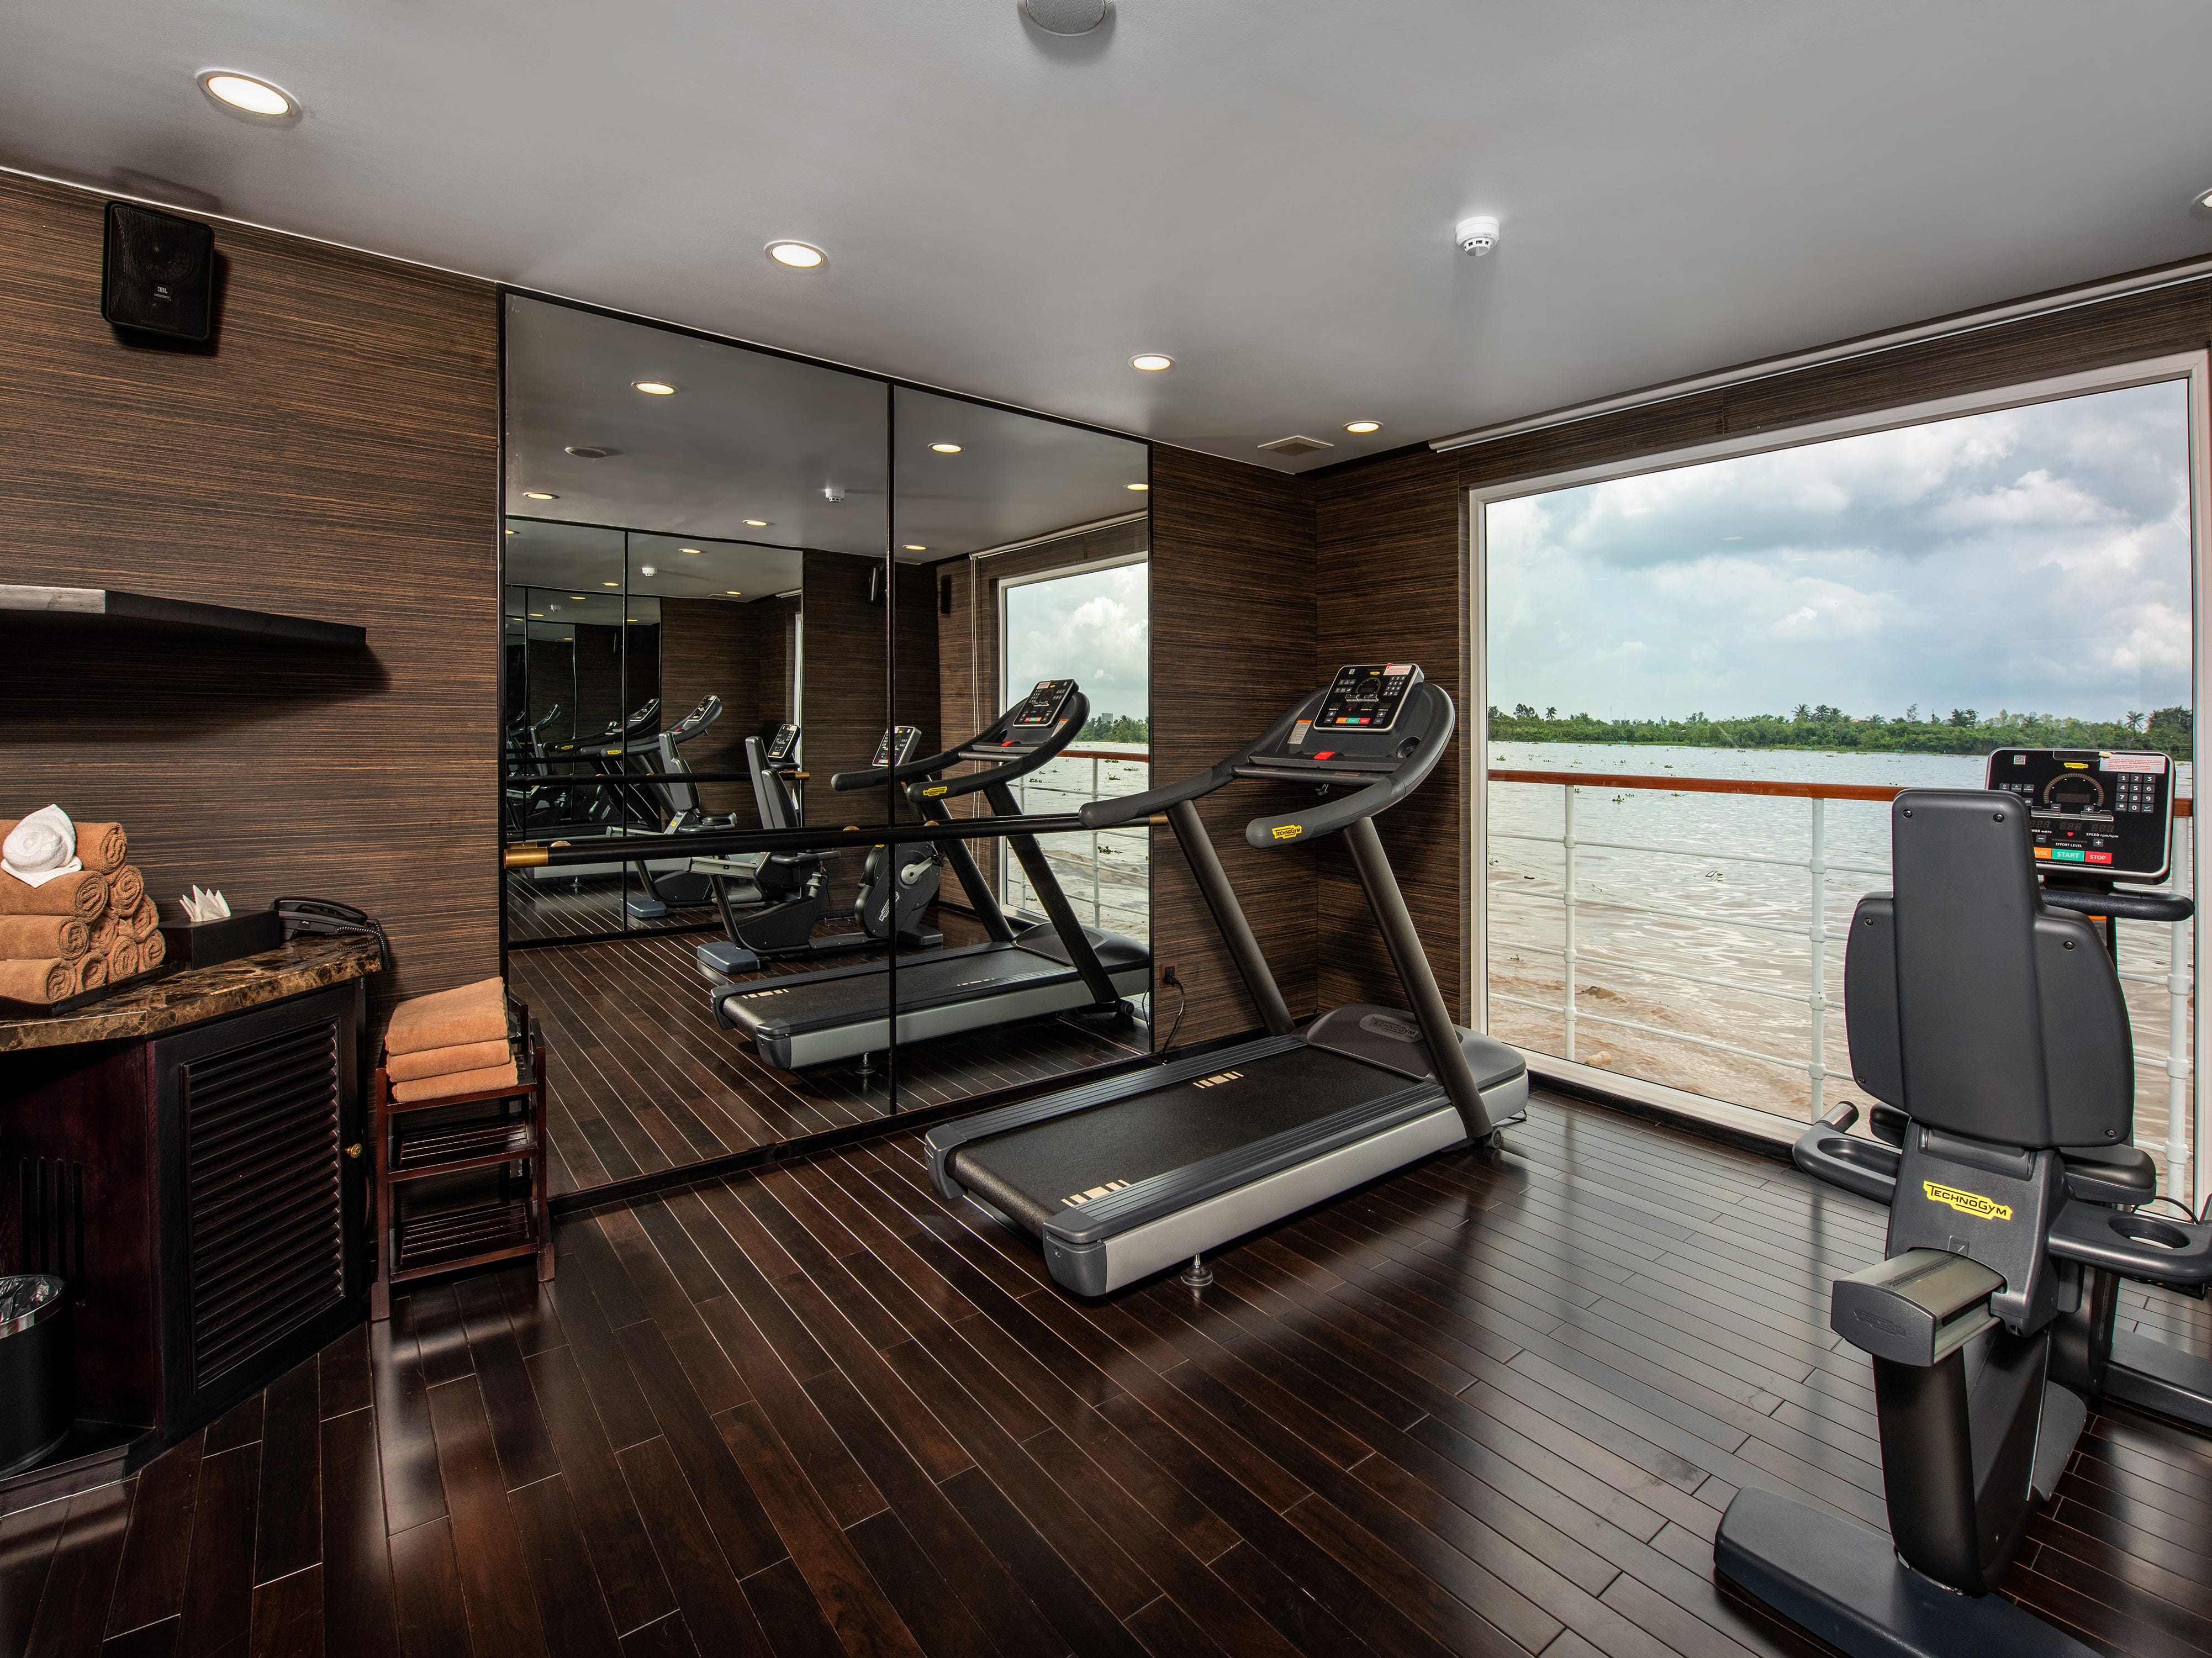 Avalon Saigon has a small fitness area with a floor-to-ceiling window offering views of the passing Mekong River.